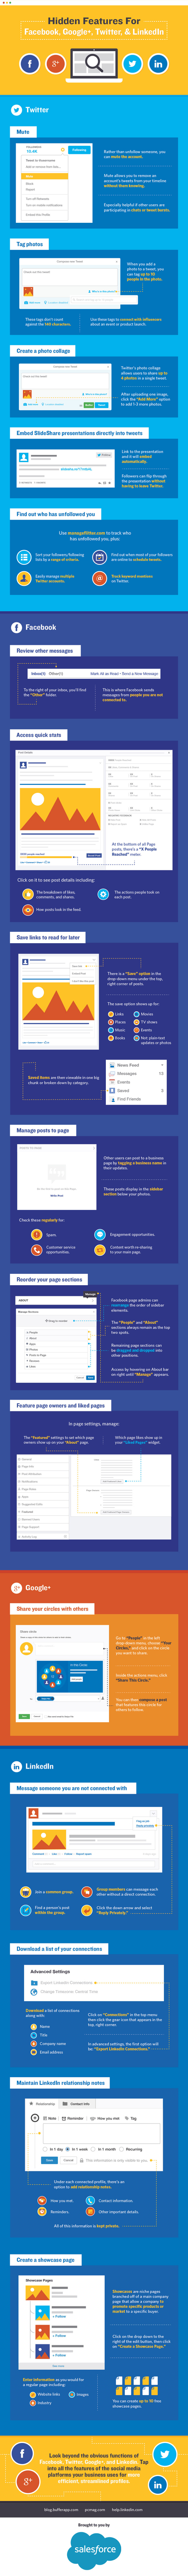 The Useful Features You Might Not Know About on Facebook, LinkedIn and More #Infographic | MarketingHits | Scoop.it